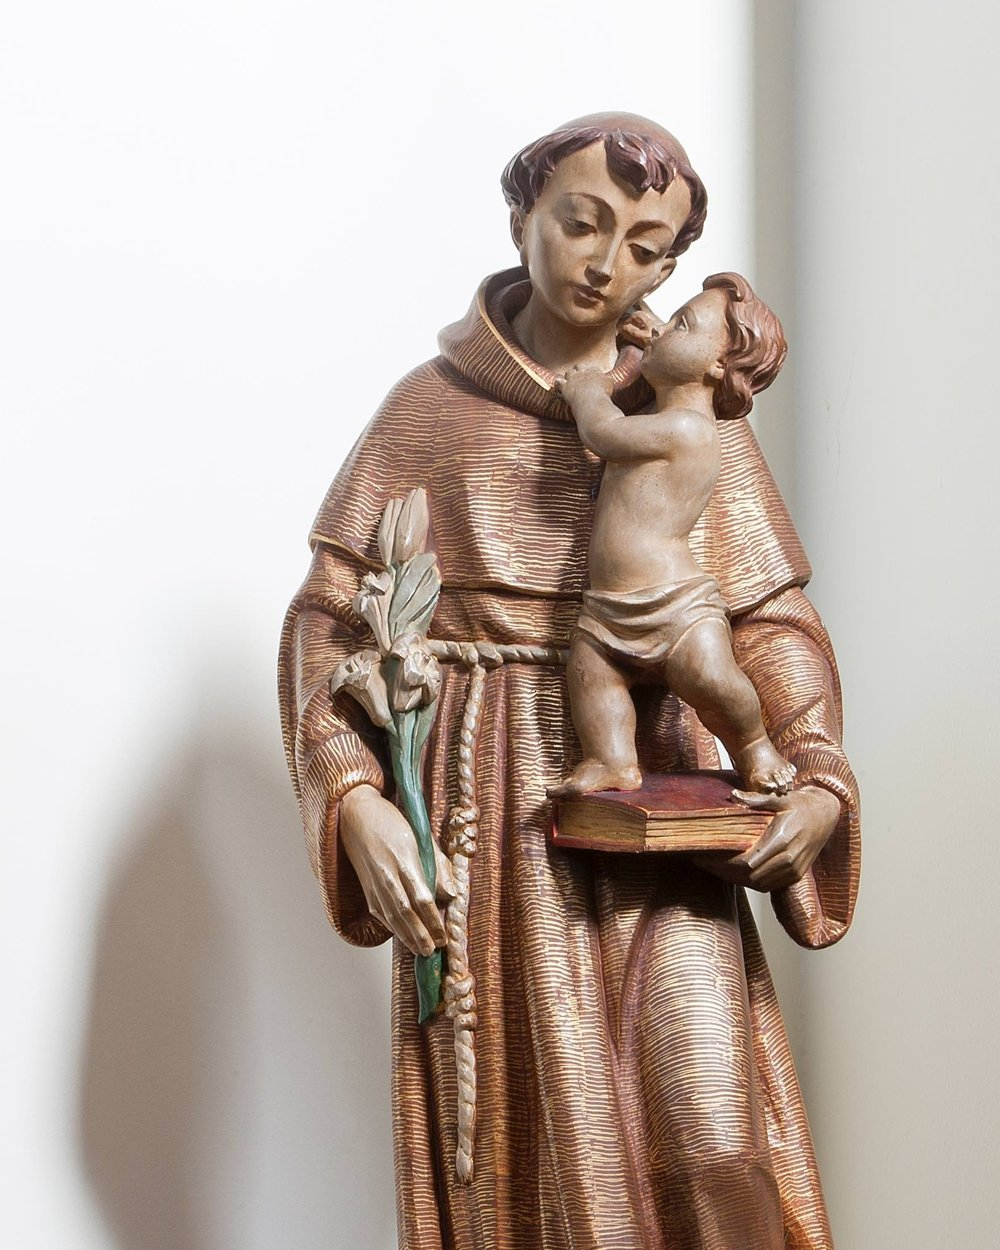 St. Anthony of Padua - This statue is one of three given in memory of Diana Mary Lewis.  It depicts St. Antony of Padua, a Franciscan friar and notable preacher.  After a period as Provincial of the Order, Antony retired to Padua, to a life devoted to preaching. Revered since the 17th century as the finder of lost things, there is  a legend associated with his preaching to the fishes.  He is also known for his devotion to the poor.  Canonised in1232 by Pope Gregory IX, he was declared a Doctor of the Church by Pope Pius XII in 1946, and his feast day is June 13th.